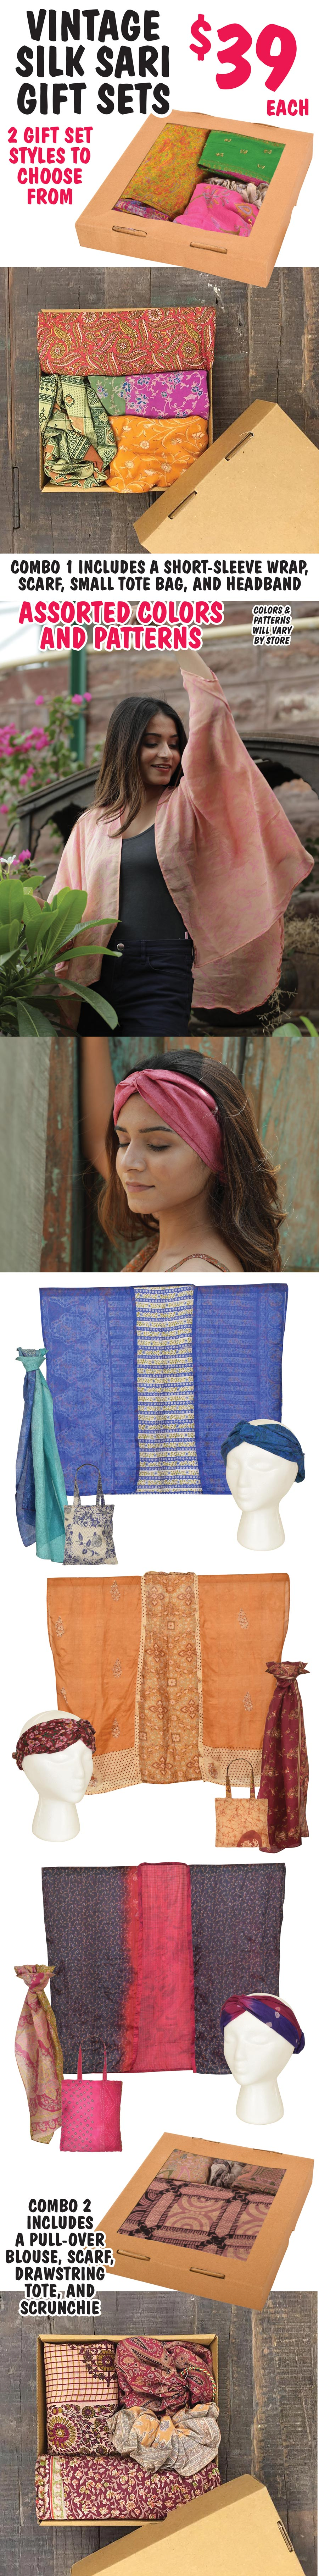 Vintage Silk Sari Gift Sets $39. Boxed and ready to give. Each set includes four pieces - Combo one has a short-sleeve wrap, scarf, small tote bag, and headband - Combo two has a pull-over blouse, scarf, drawstring tote, and scrunchie. Assorted colors and patterns.